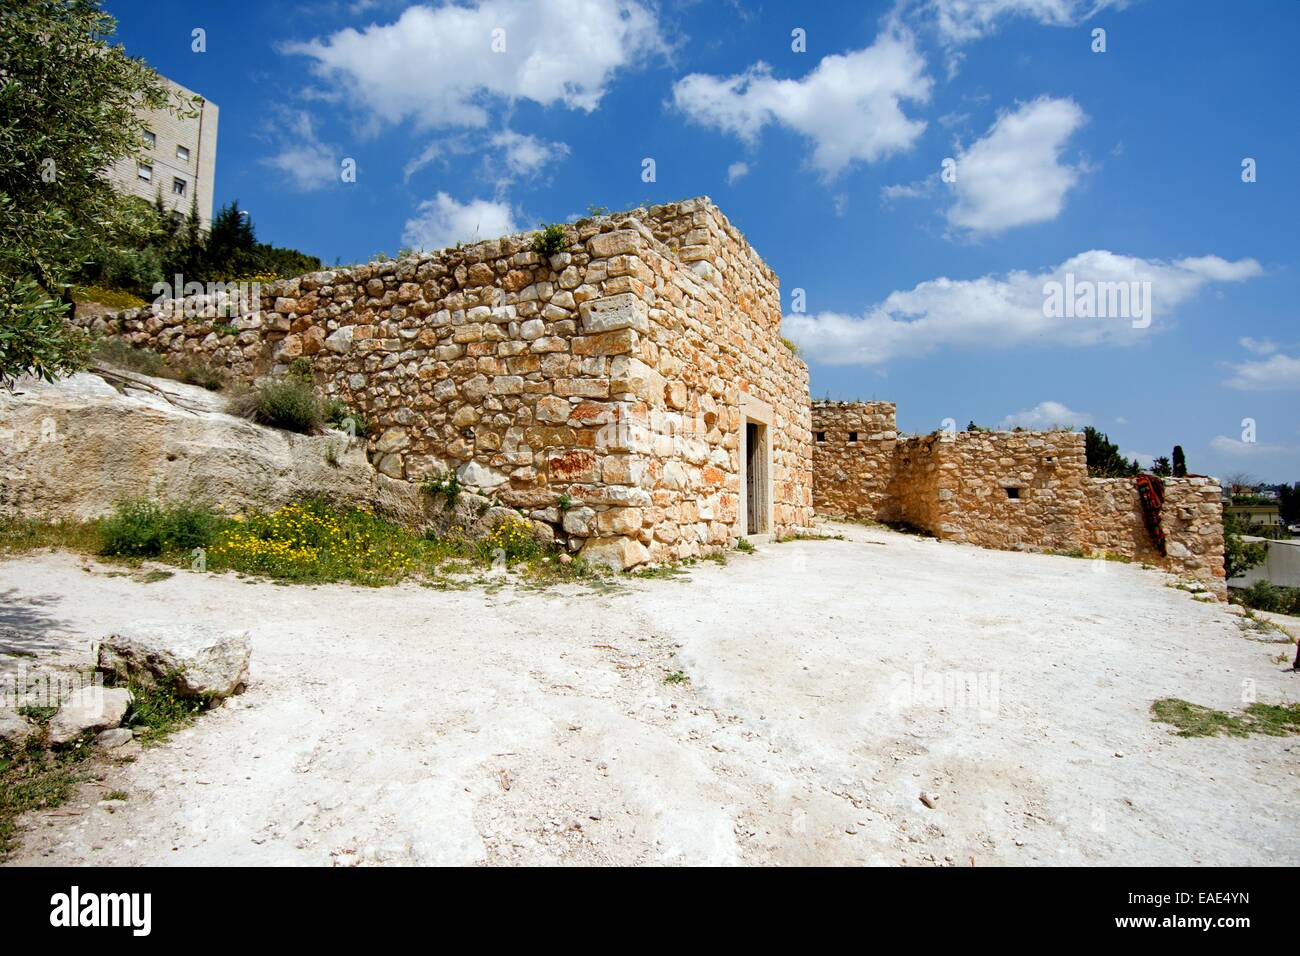 Open air museum depicting village life at the time of Jesus showing ruins of village buildings, Nazareth village, - Stock Image